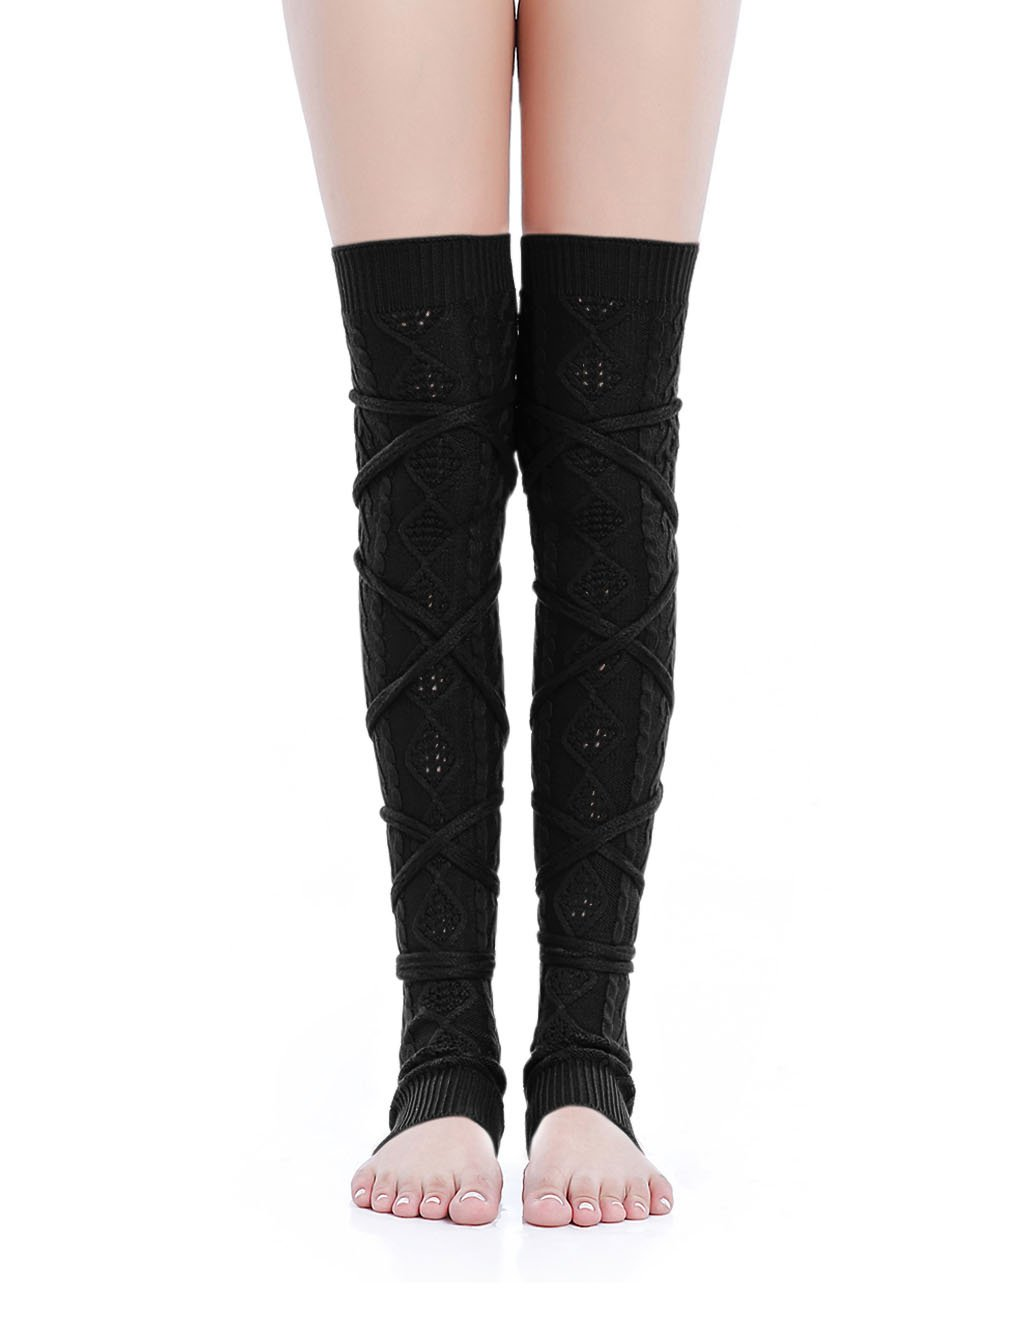 Kimberly's Knit Women Thigh High Tie Cable Knit Crochet Long Boot Leg Warmers (XS-M, black)